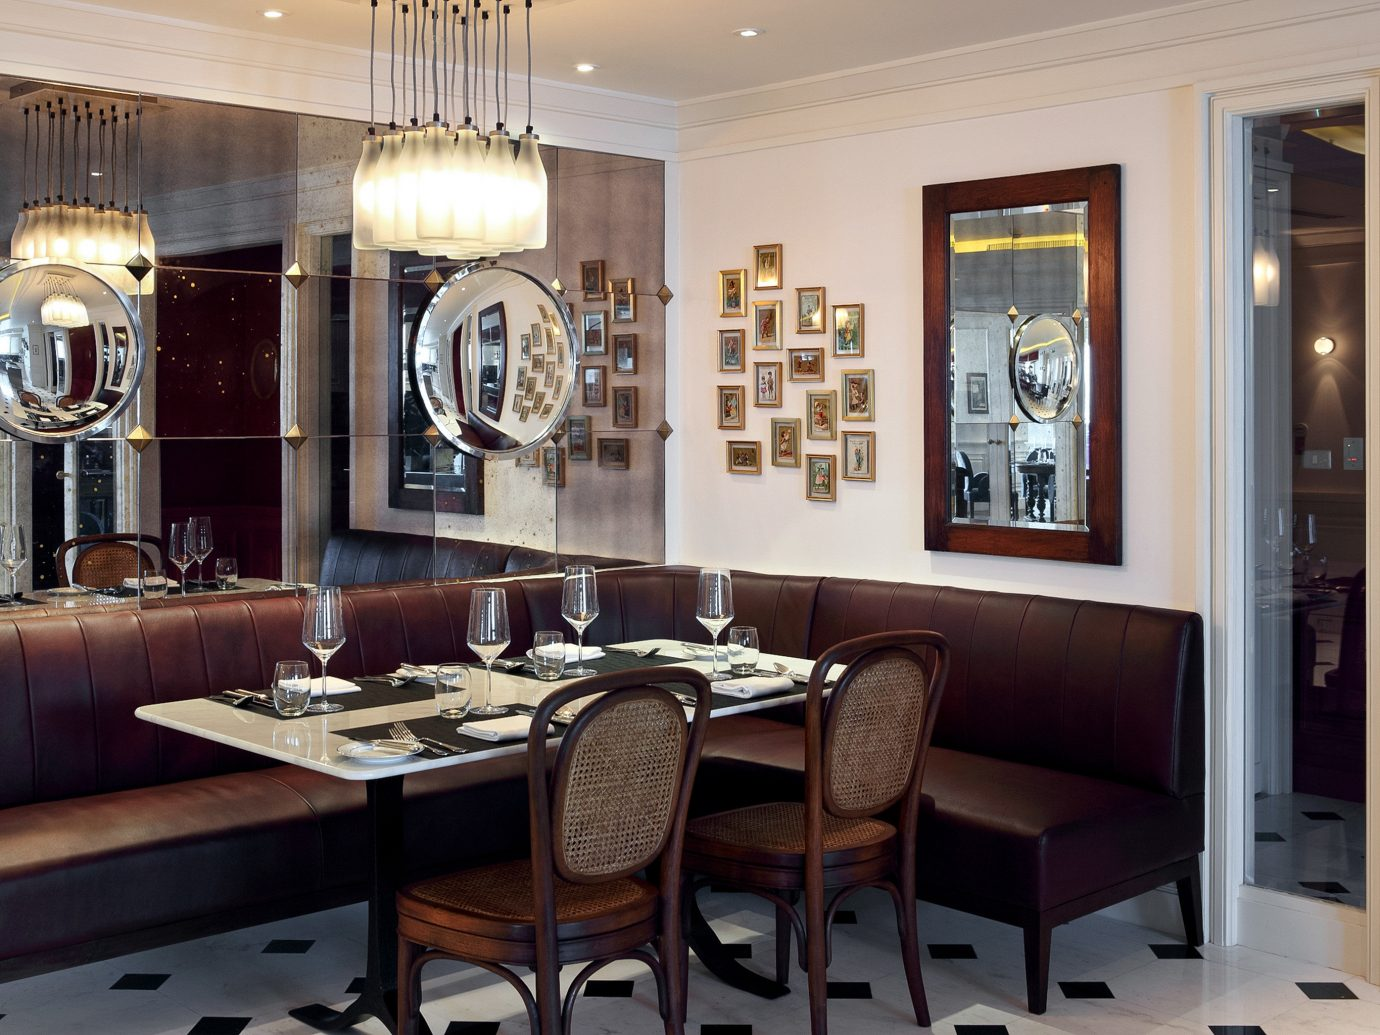 Business City Dining Drink Eat Hotels Landmarks Modern Scenic views indoor floor dining room room property living room home estate interior design real estate cabinetry area furniture